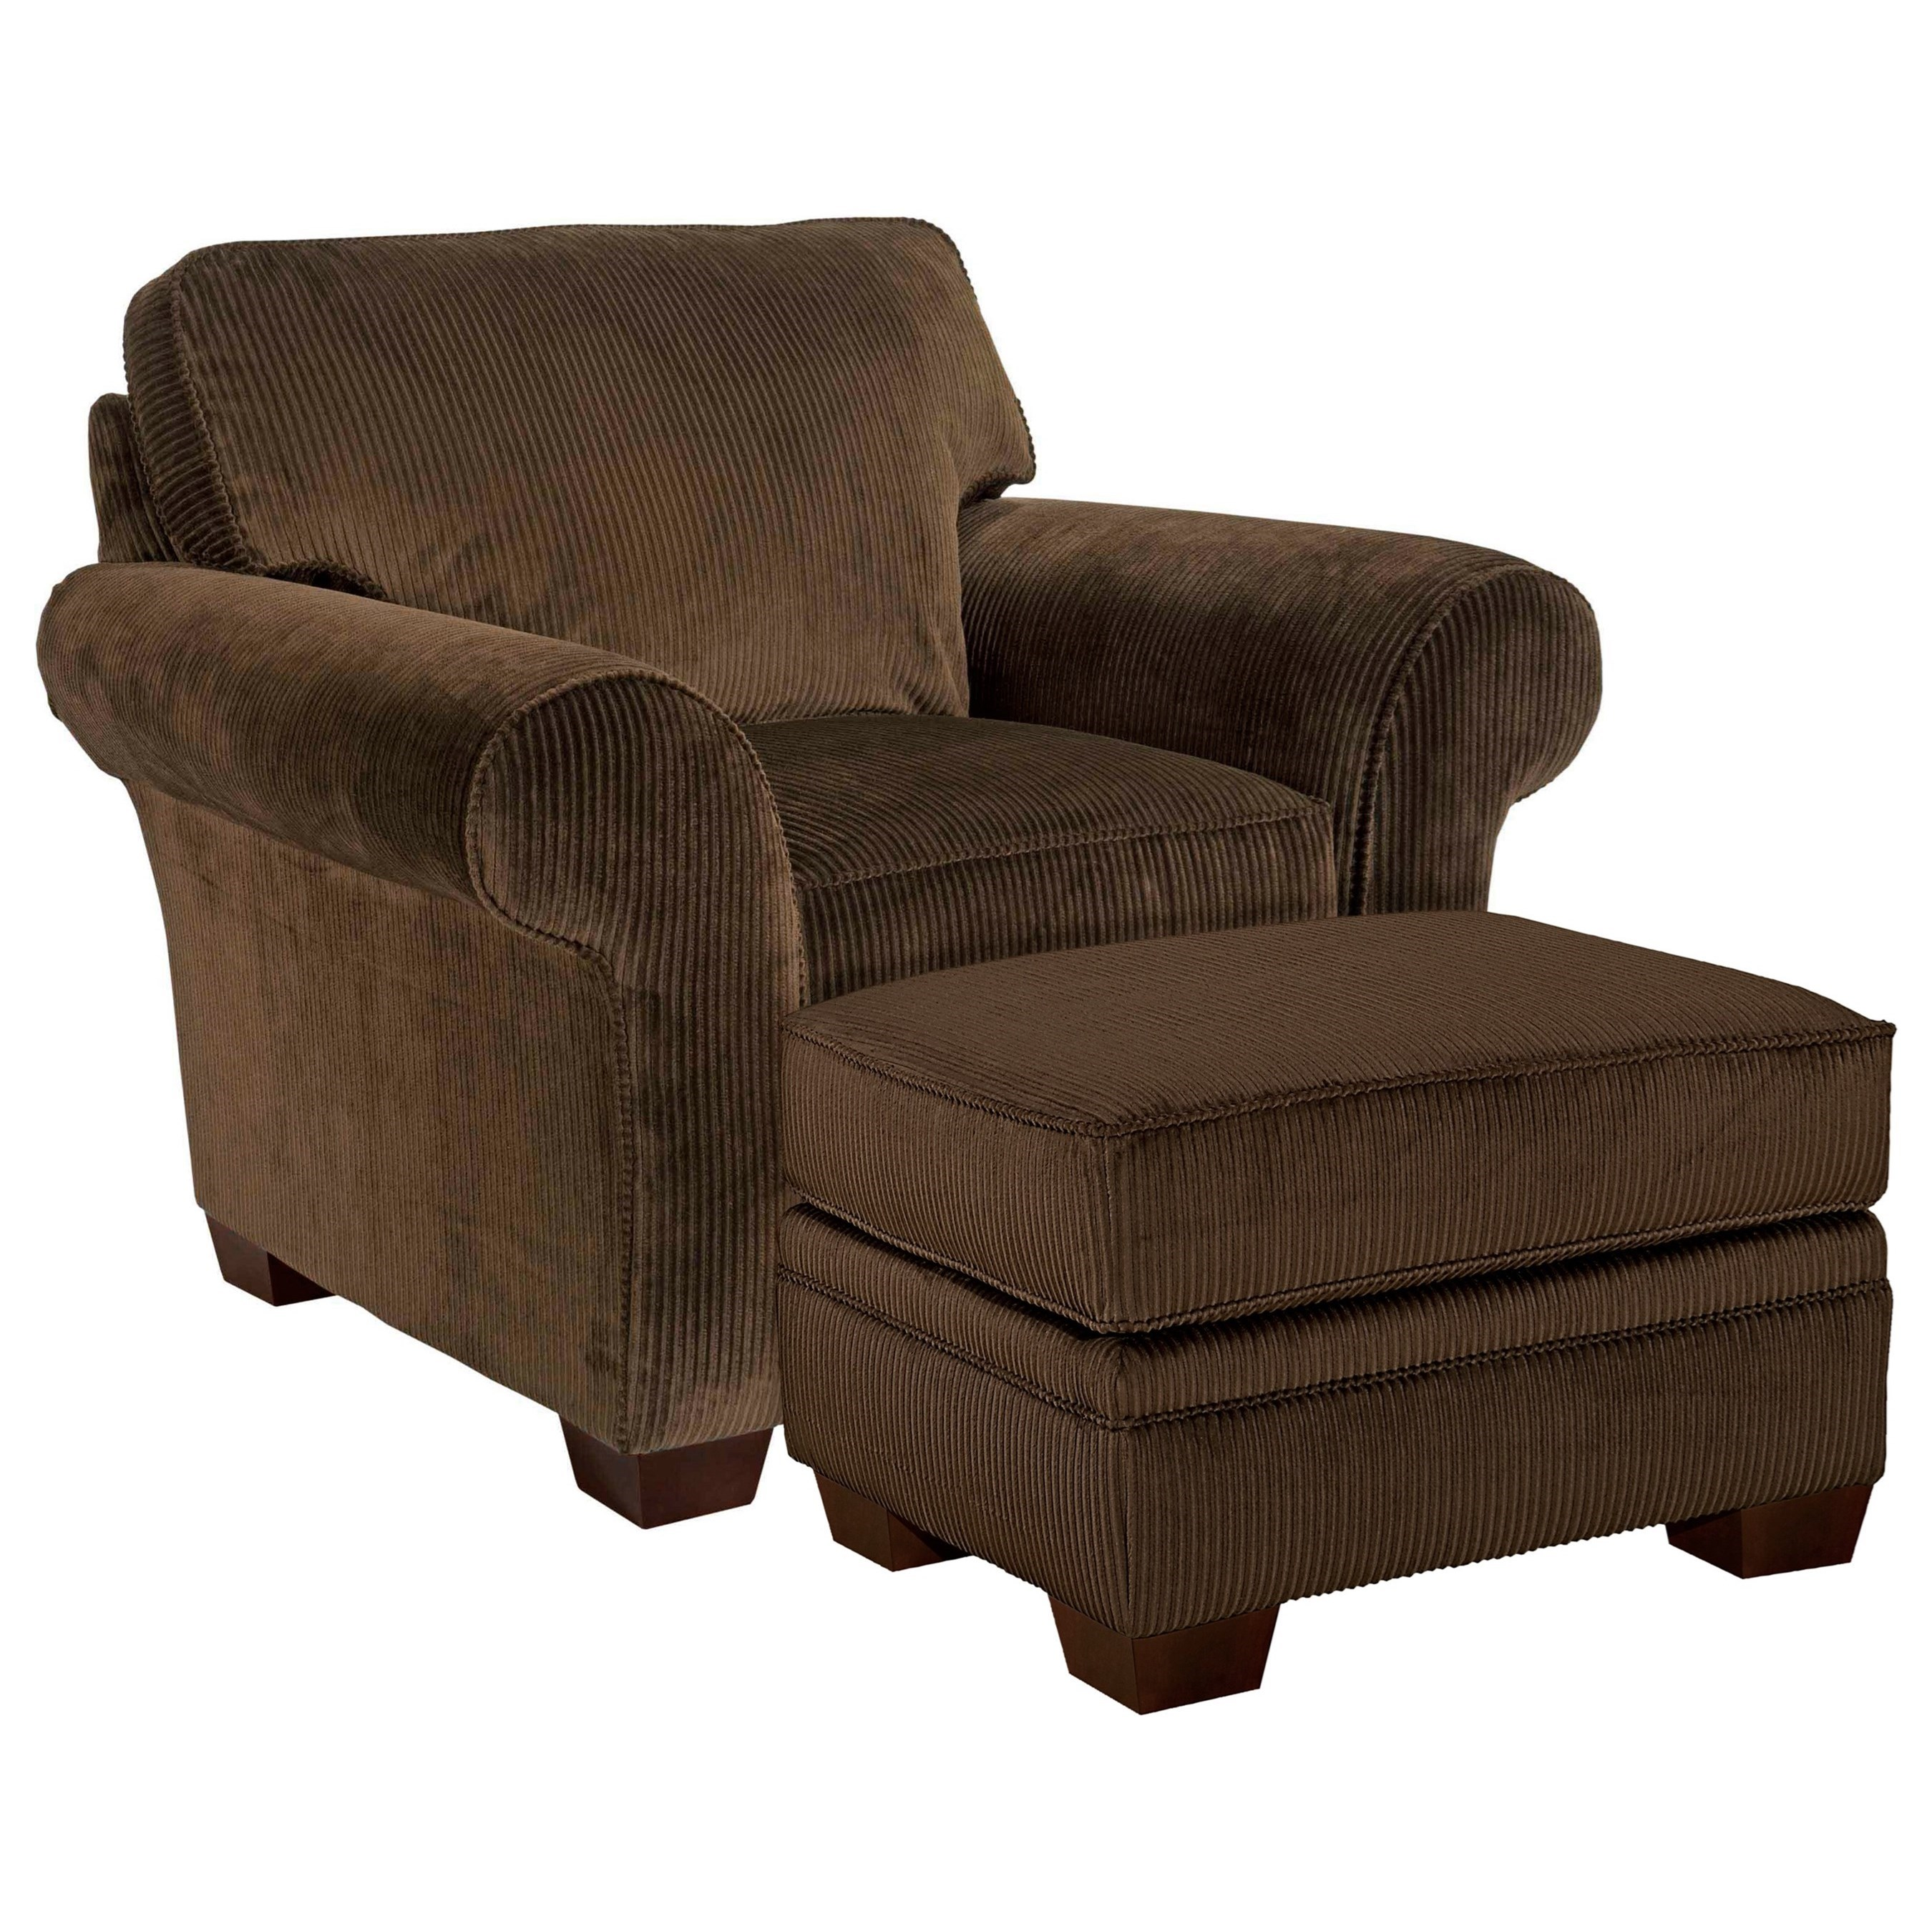 Broyhill Furniture Zachary Chair and Ottoman - Item Number: 7902-0+5-7973-87